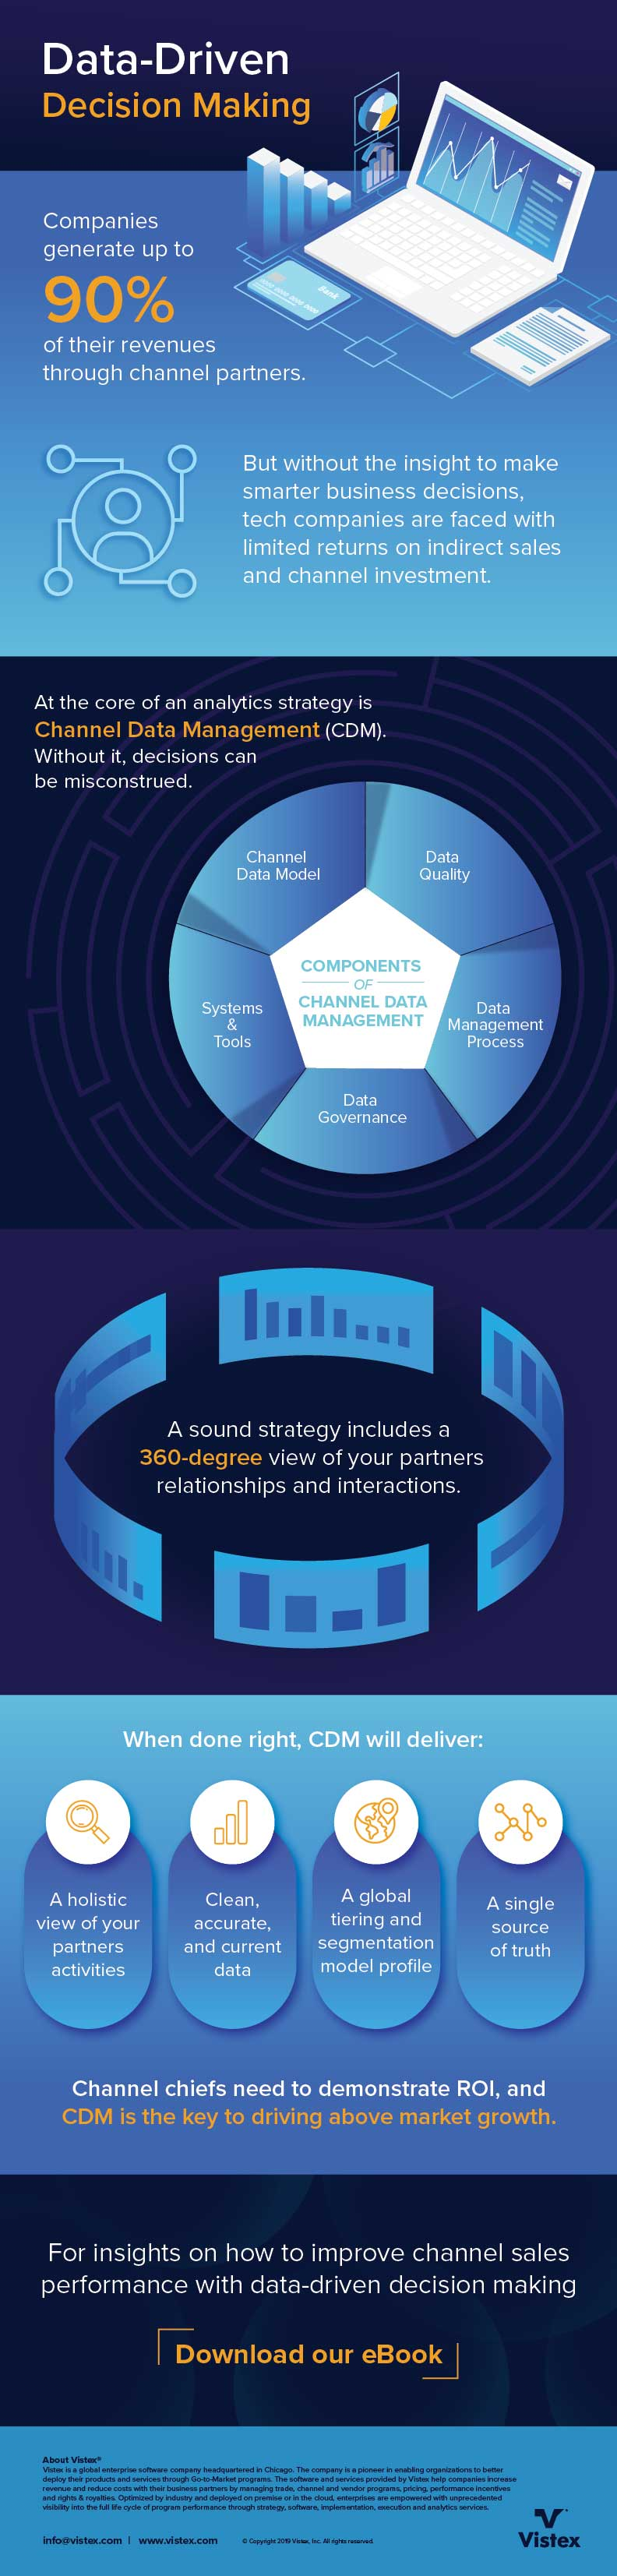 Data Driven Decision Making Infographic